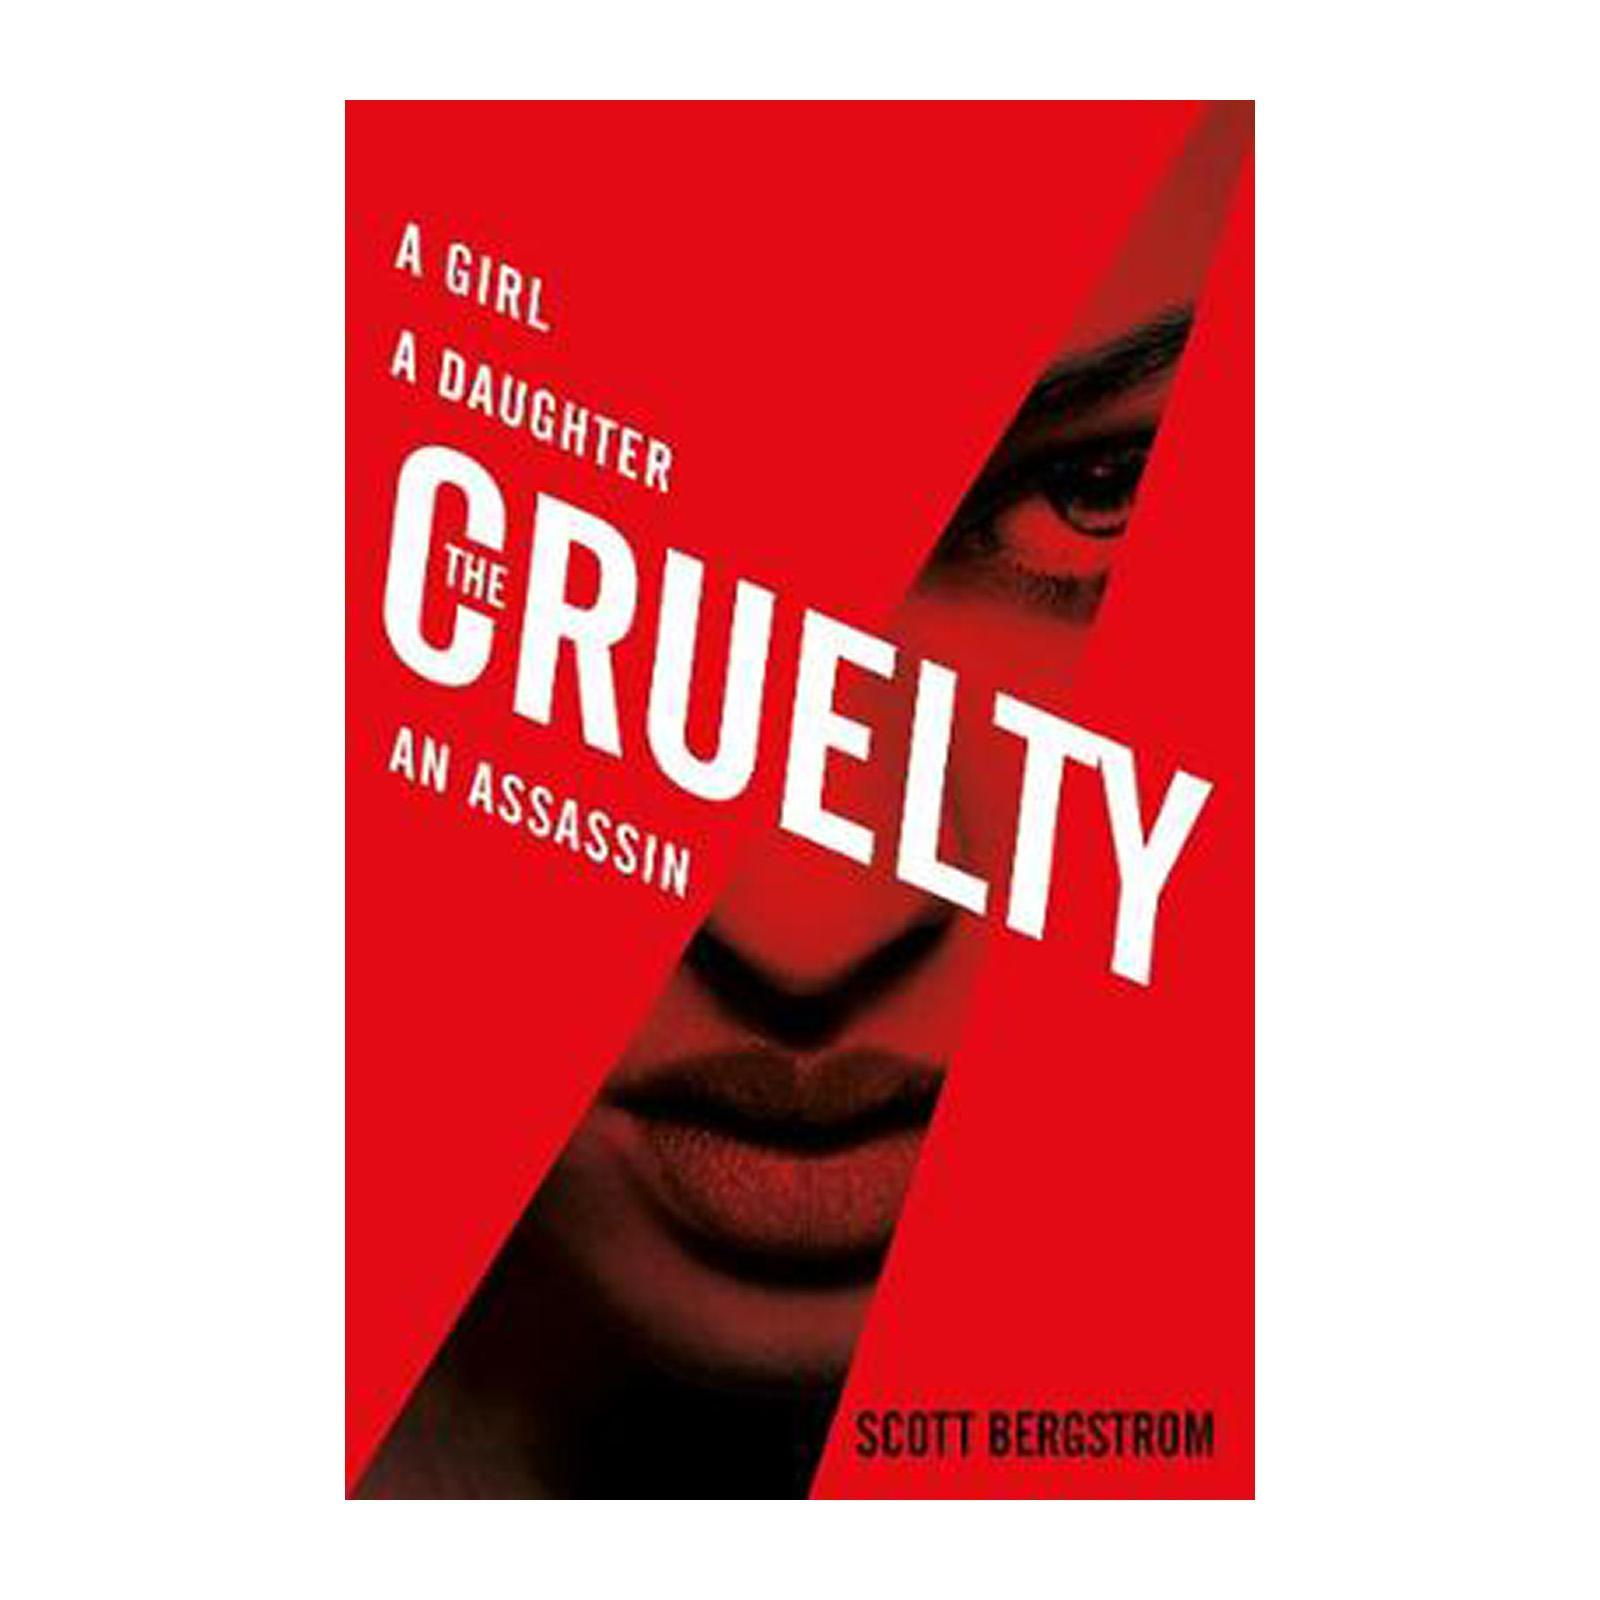 The Cruelty (Paperback)